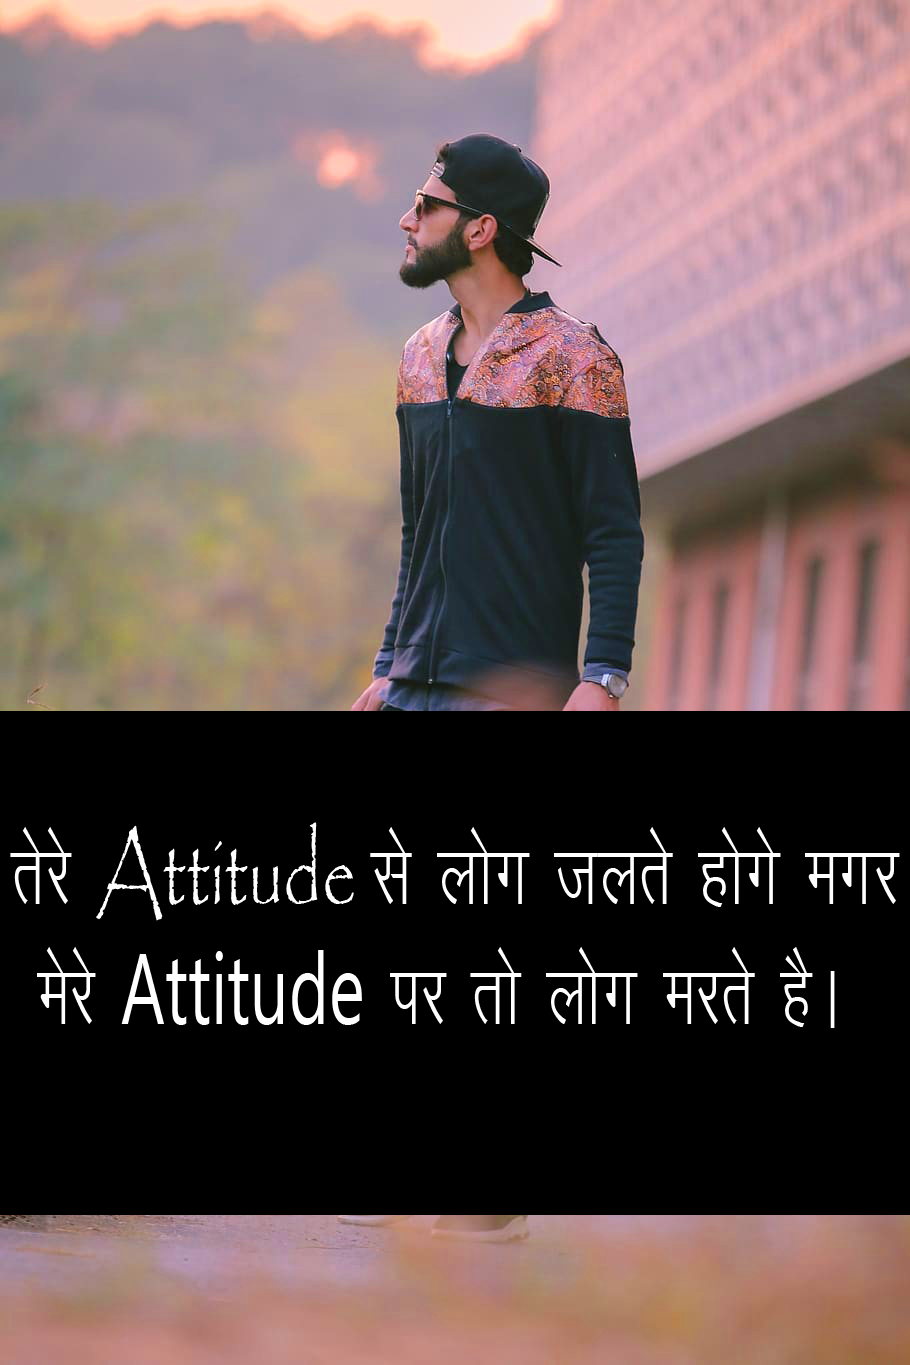 Attitude Whatsapp DP Wallpaper for Boys